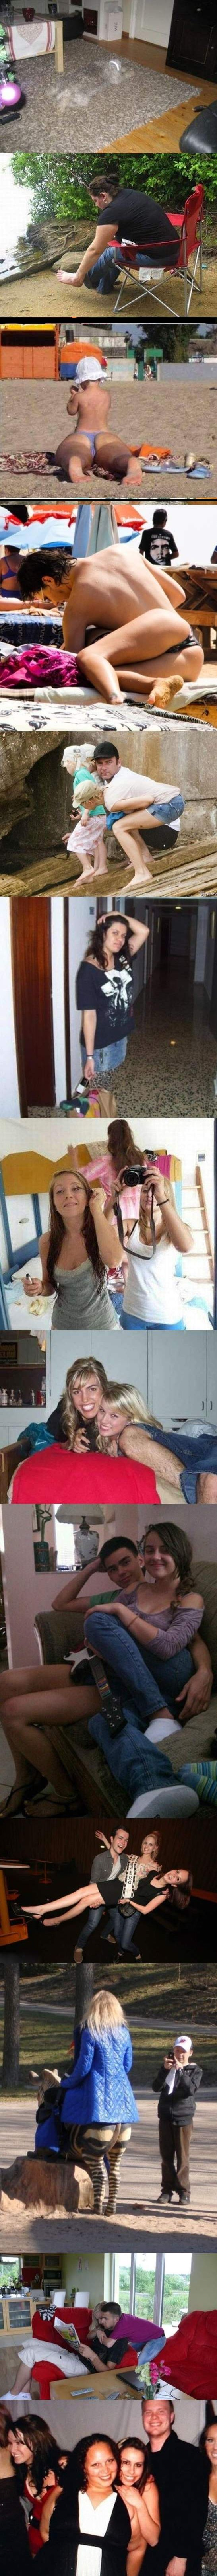 The most AWKWARD photos I've ever seen!! I laughed so hard I cried.